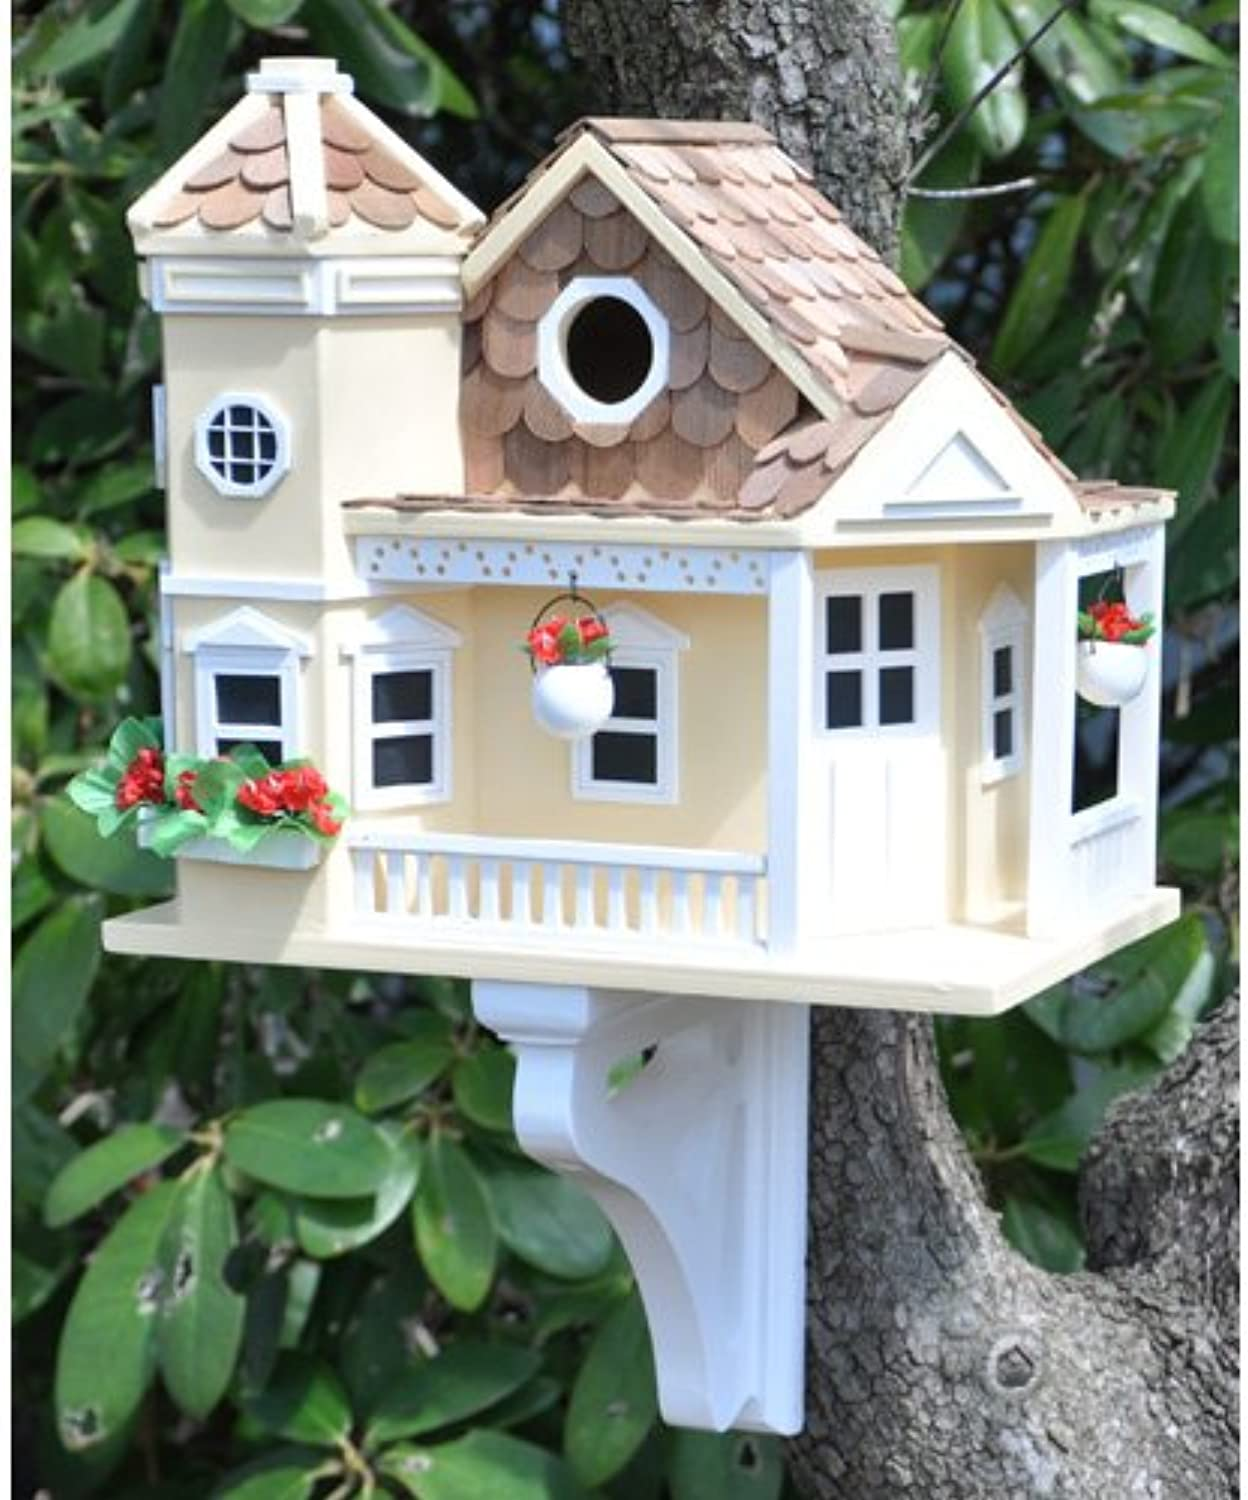 A Delightful And Decorative Cottage Style Bird House Home and Feeder